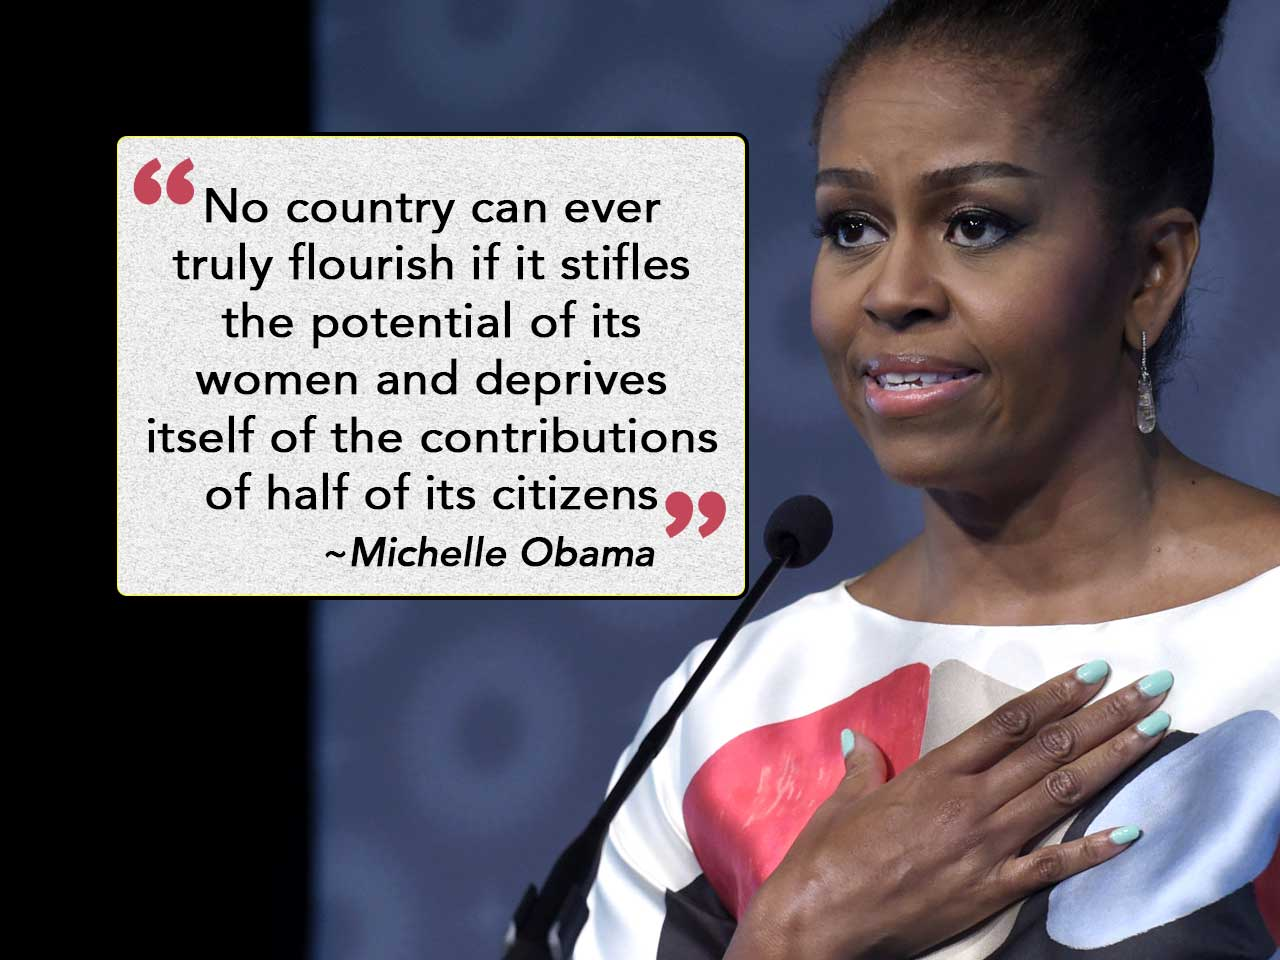 Quotes By Famous Women 5 Powerful Quotes From Famous Women To Inspire You